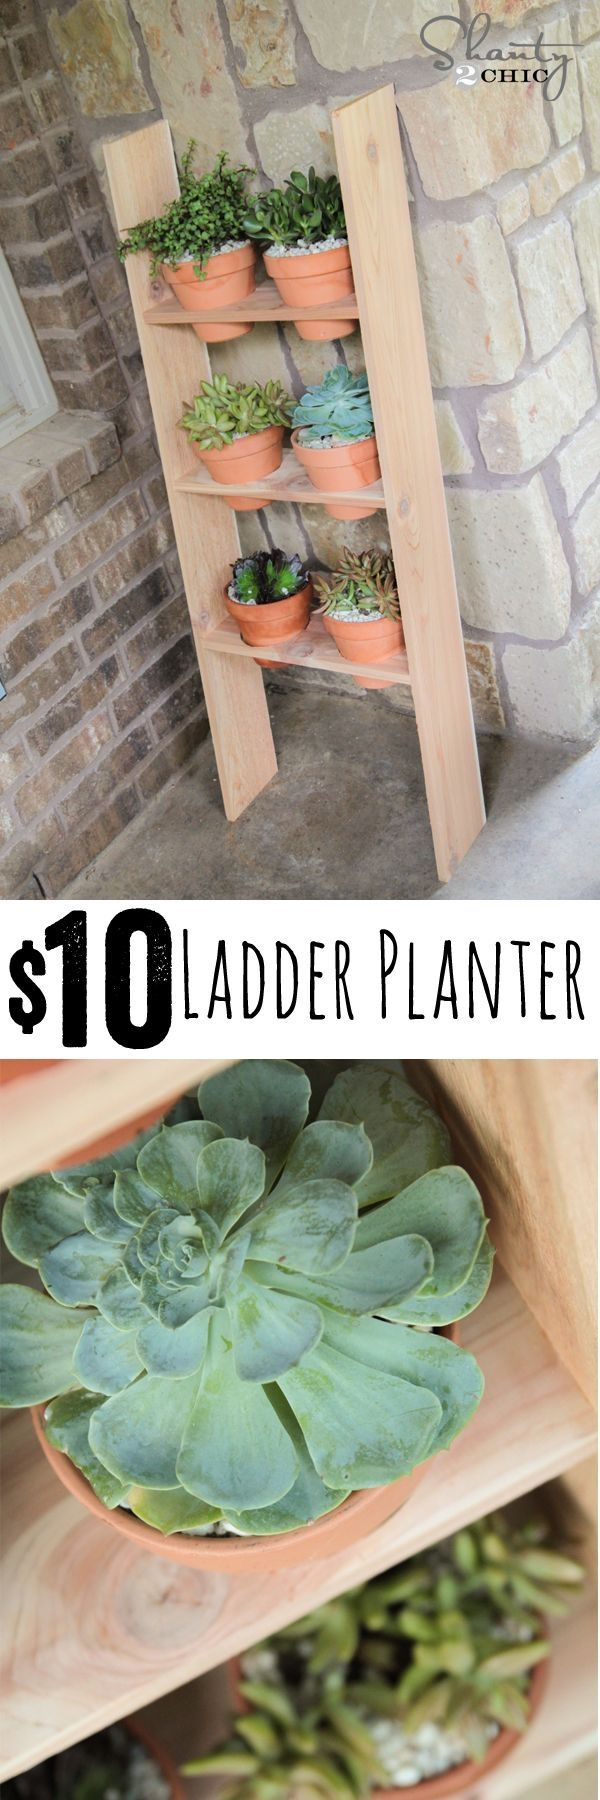 LOVE this DIY Ladder Planter... So cheap and easy! Free plans too! www.shanty-2-chic.com by Susan Ciaburri LaMarca